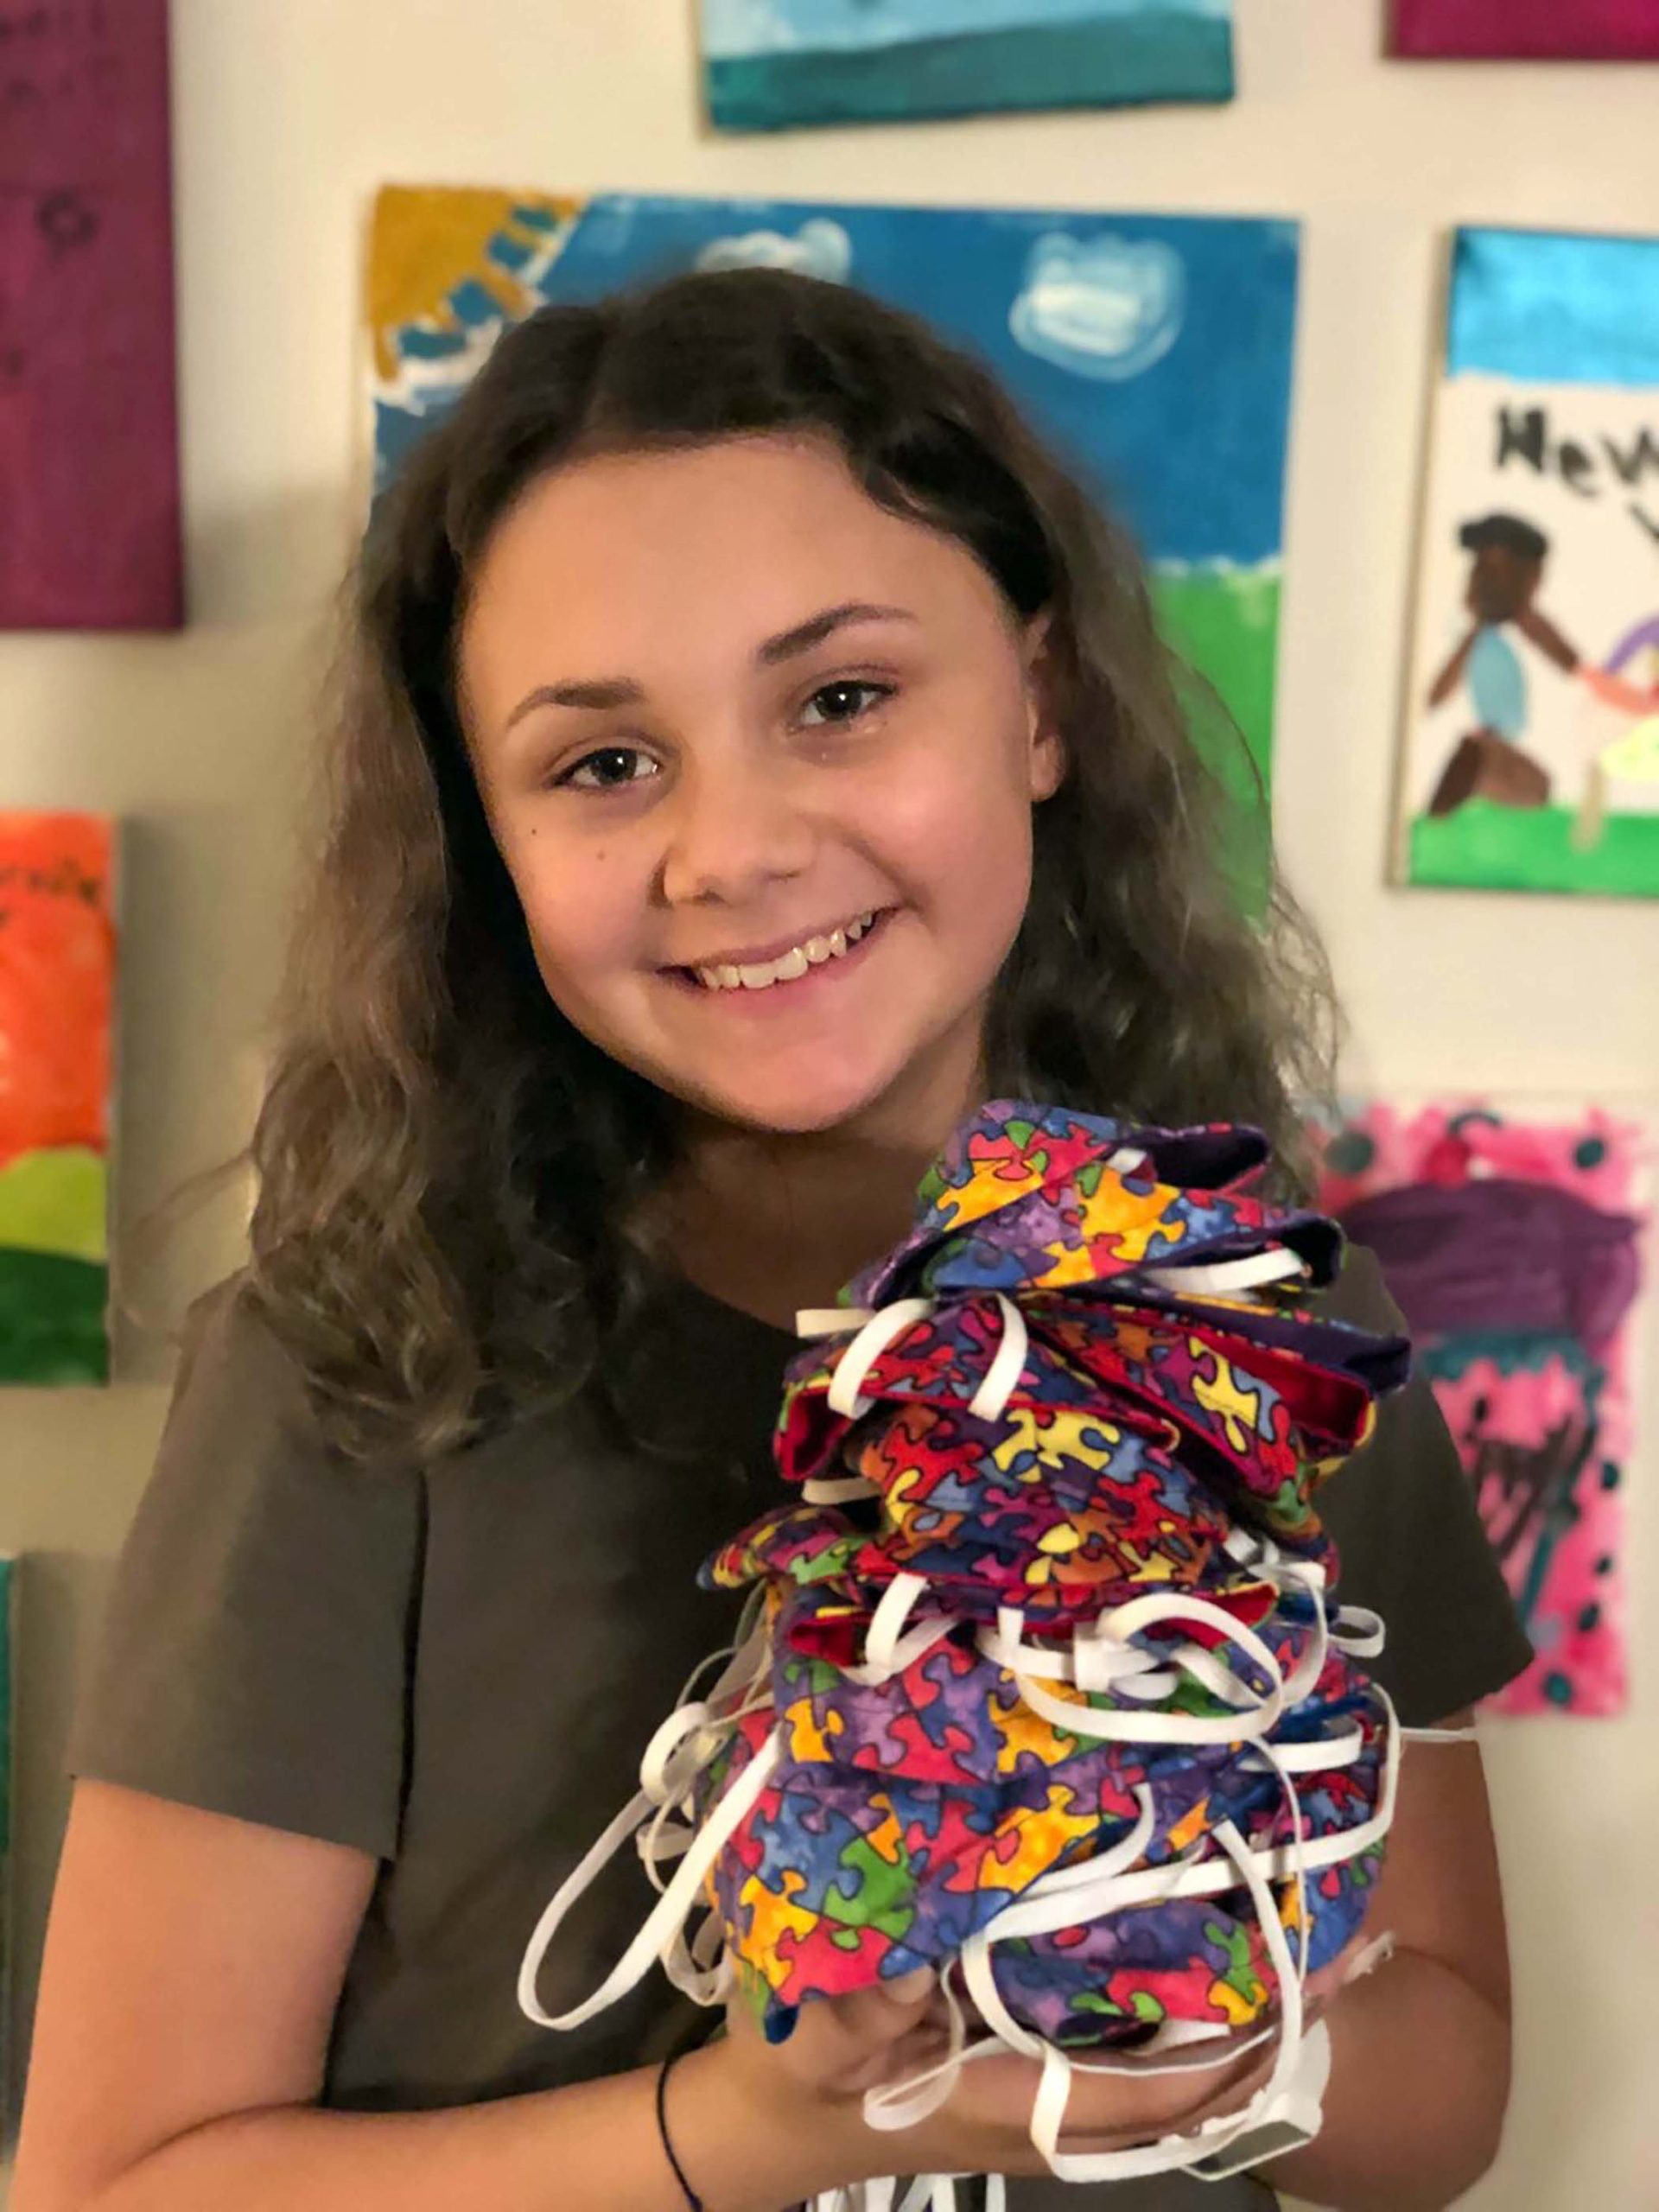 Rome Girl Makes, Donates Masks for Autism Awareness